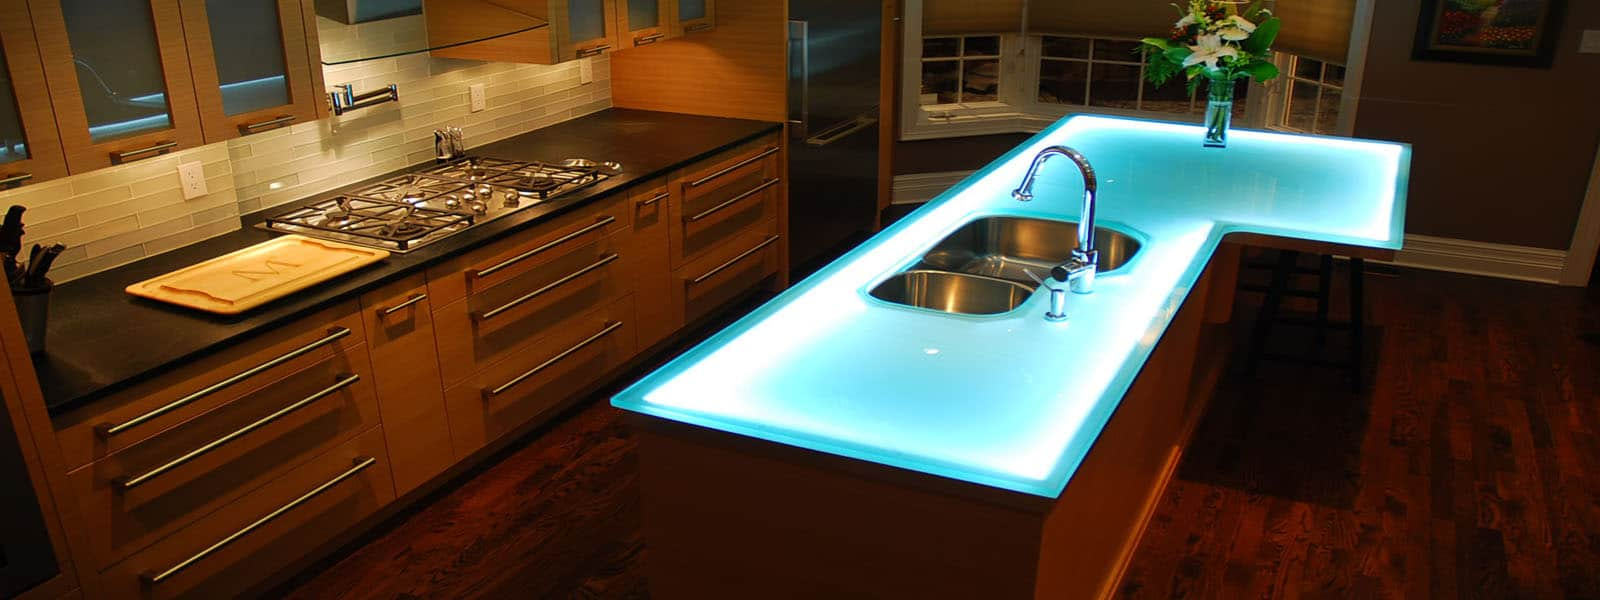 Beautiful Modern Kitchen Countertops From Unusual Materials 30 Ideas